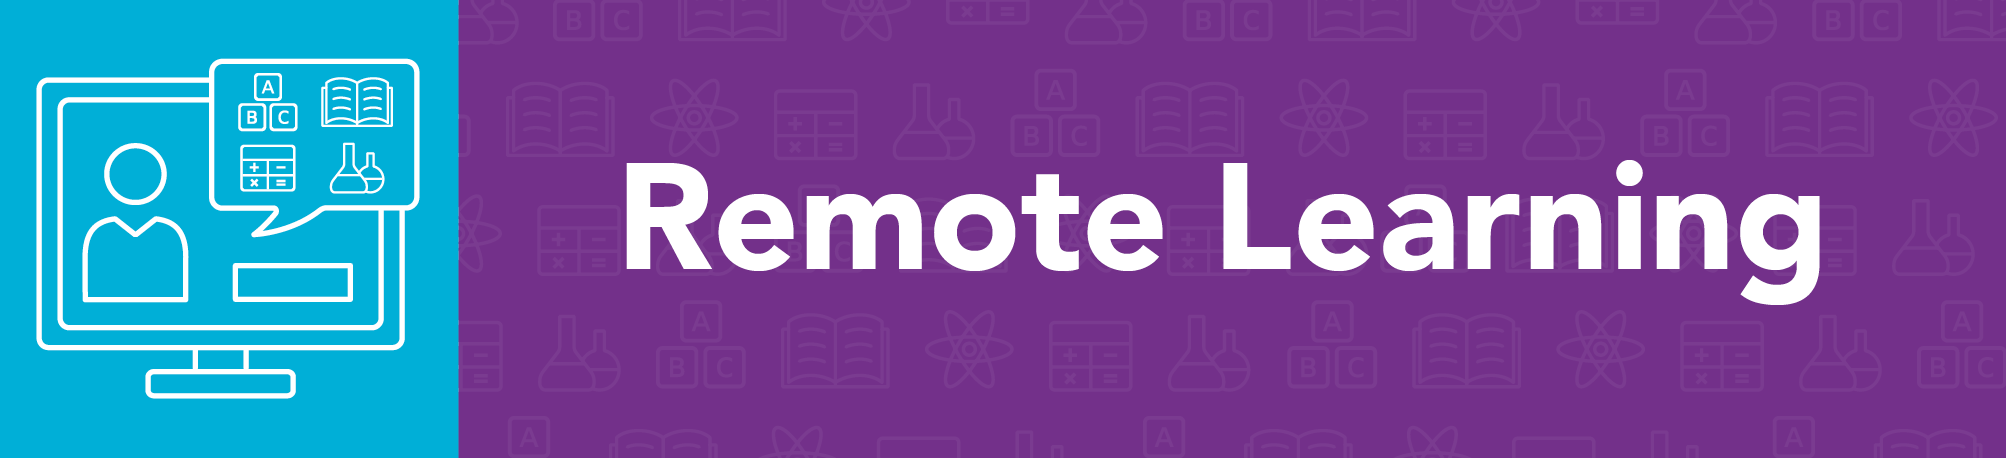 Remote_Learning_Banner_new.png